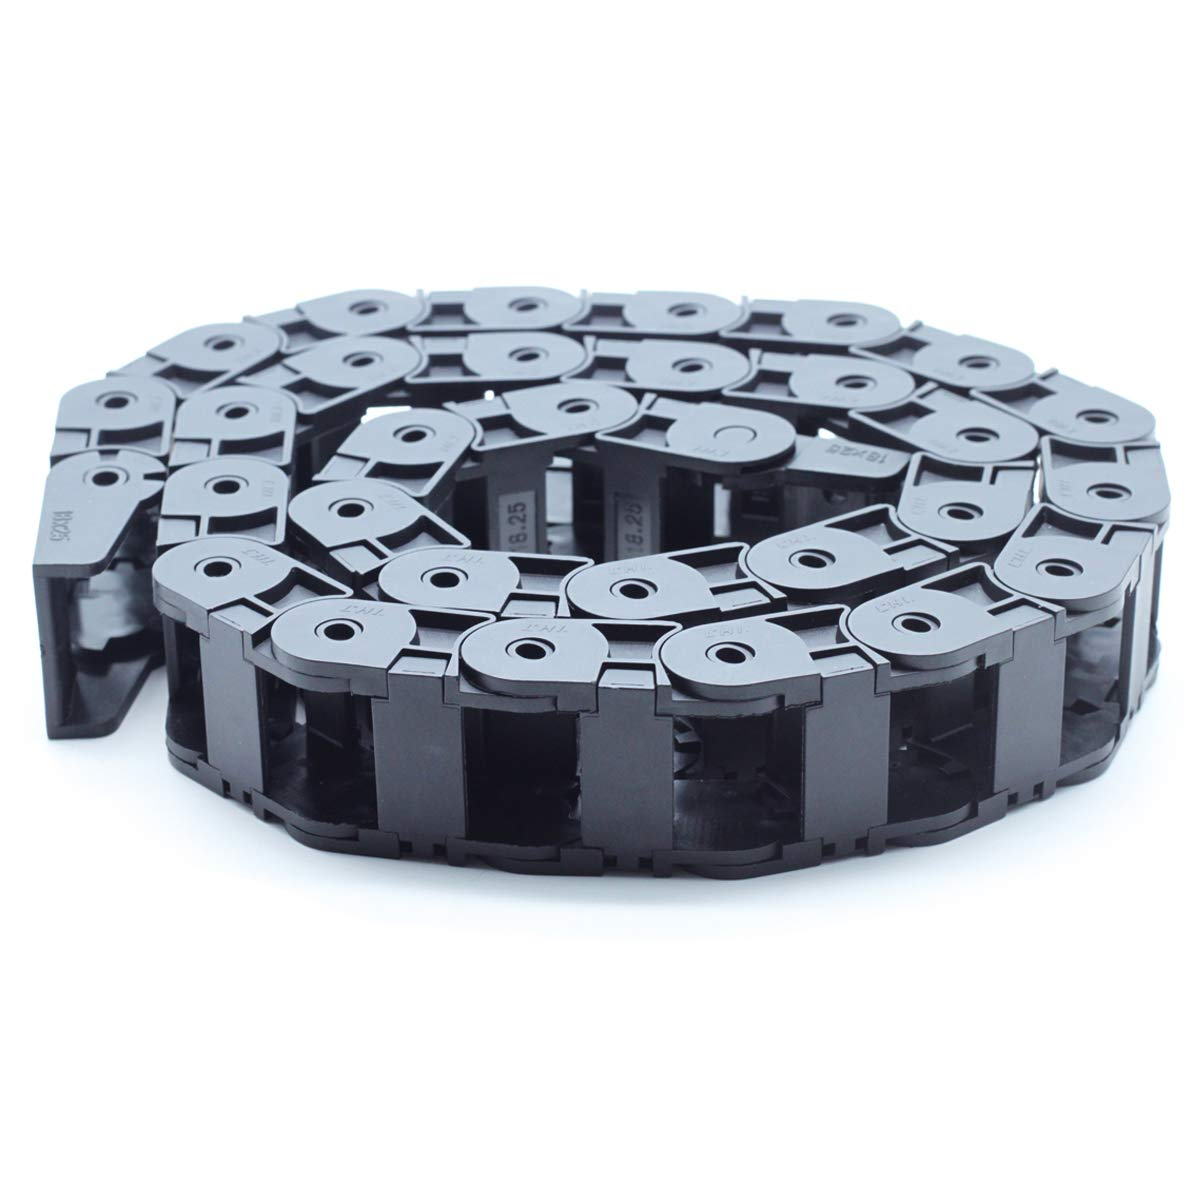 18mm x 25mm Dasunny Drag Chain CNC Cable Wire Semi Enclosed Type Carrier Drag Chains 39.4Inches Length